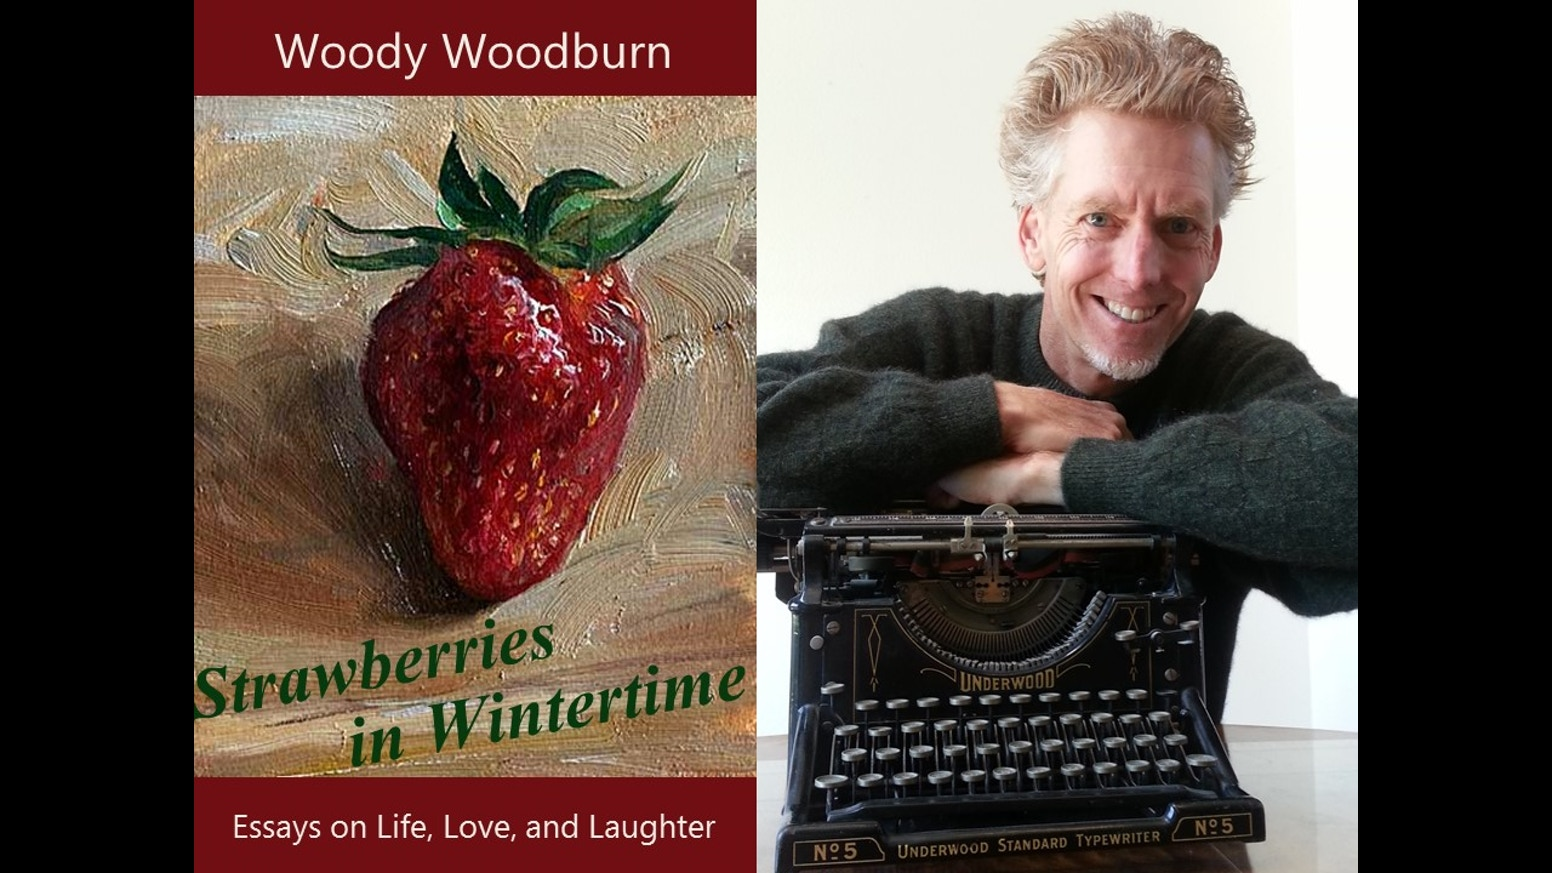 strawberries in wintertime book by woody woodburn  essays on life love and laughter by woody woodburn national award winning columnist and author of wooden me get your copy now